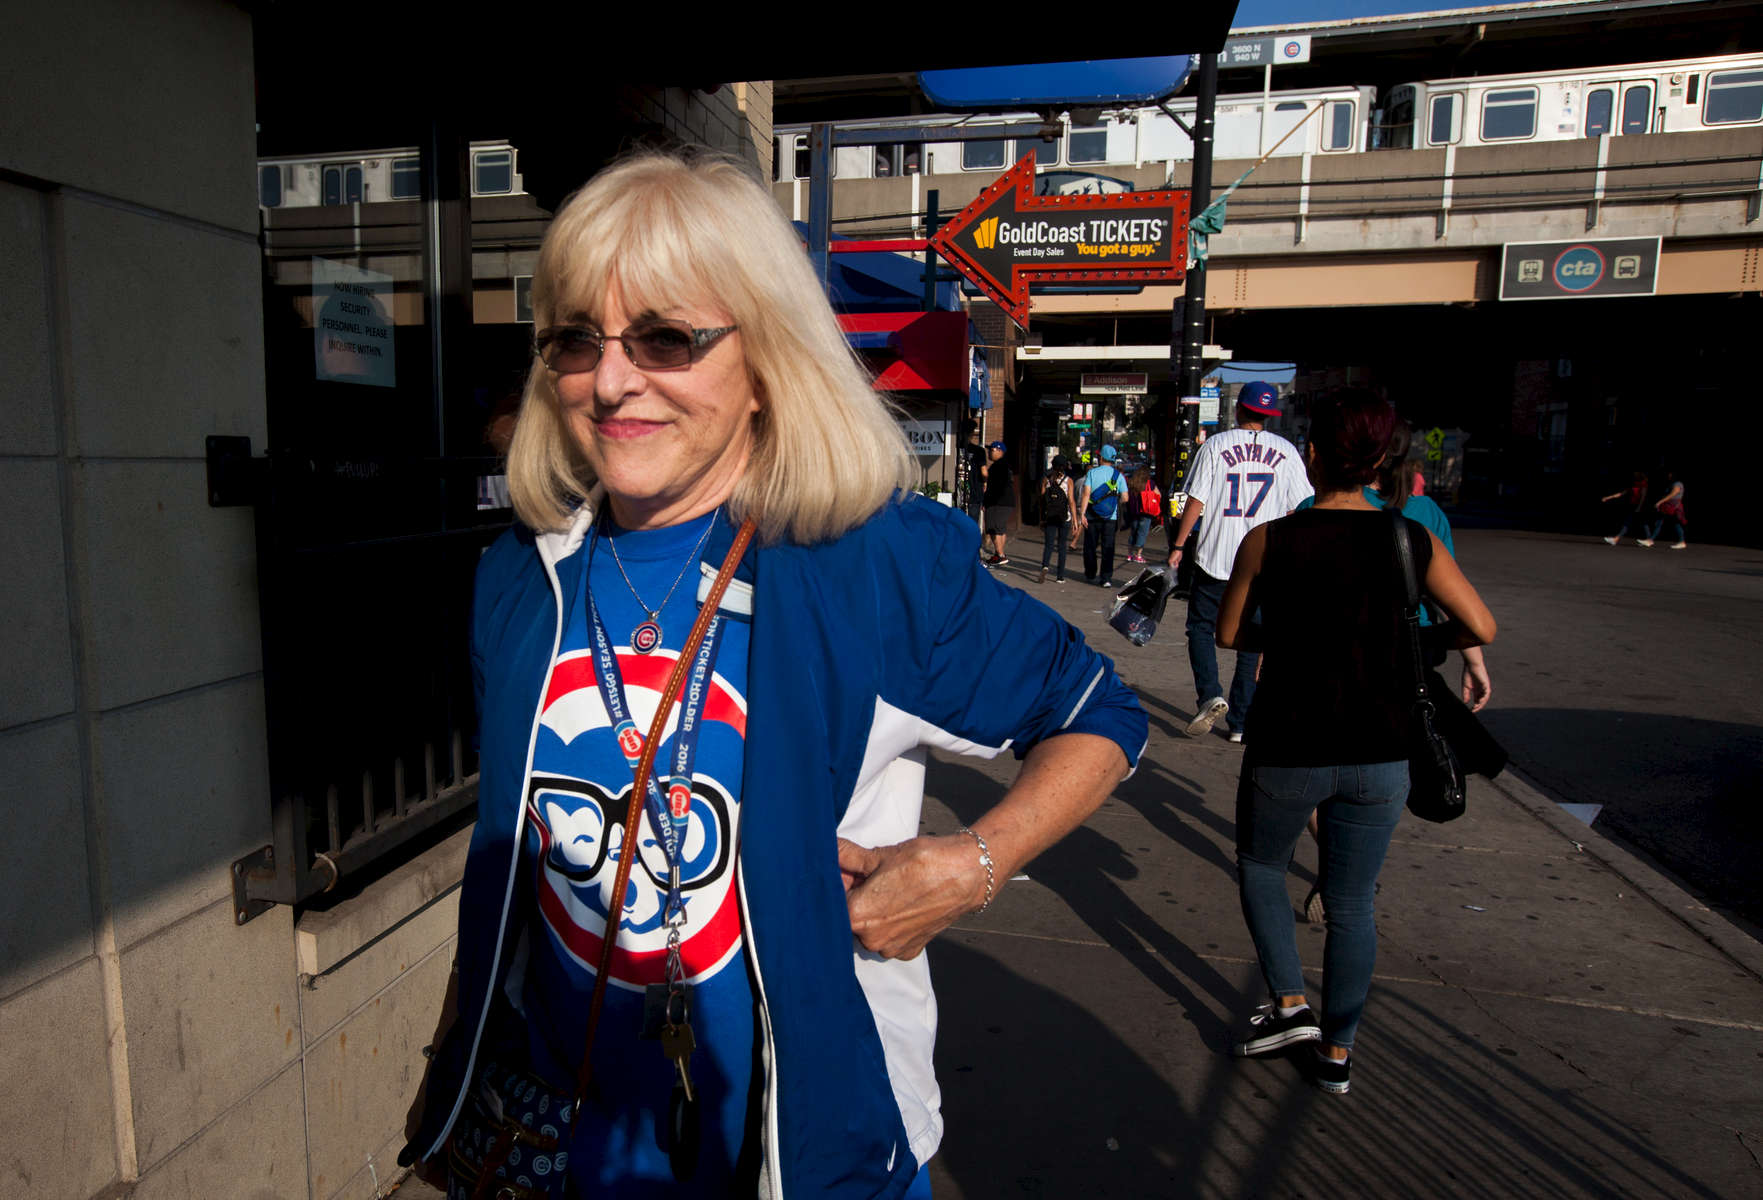 Chicago Cubs fans fill the sidewalks outside of Wrigley Field after Saturday's game against the St. Louis Cardinals.